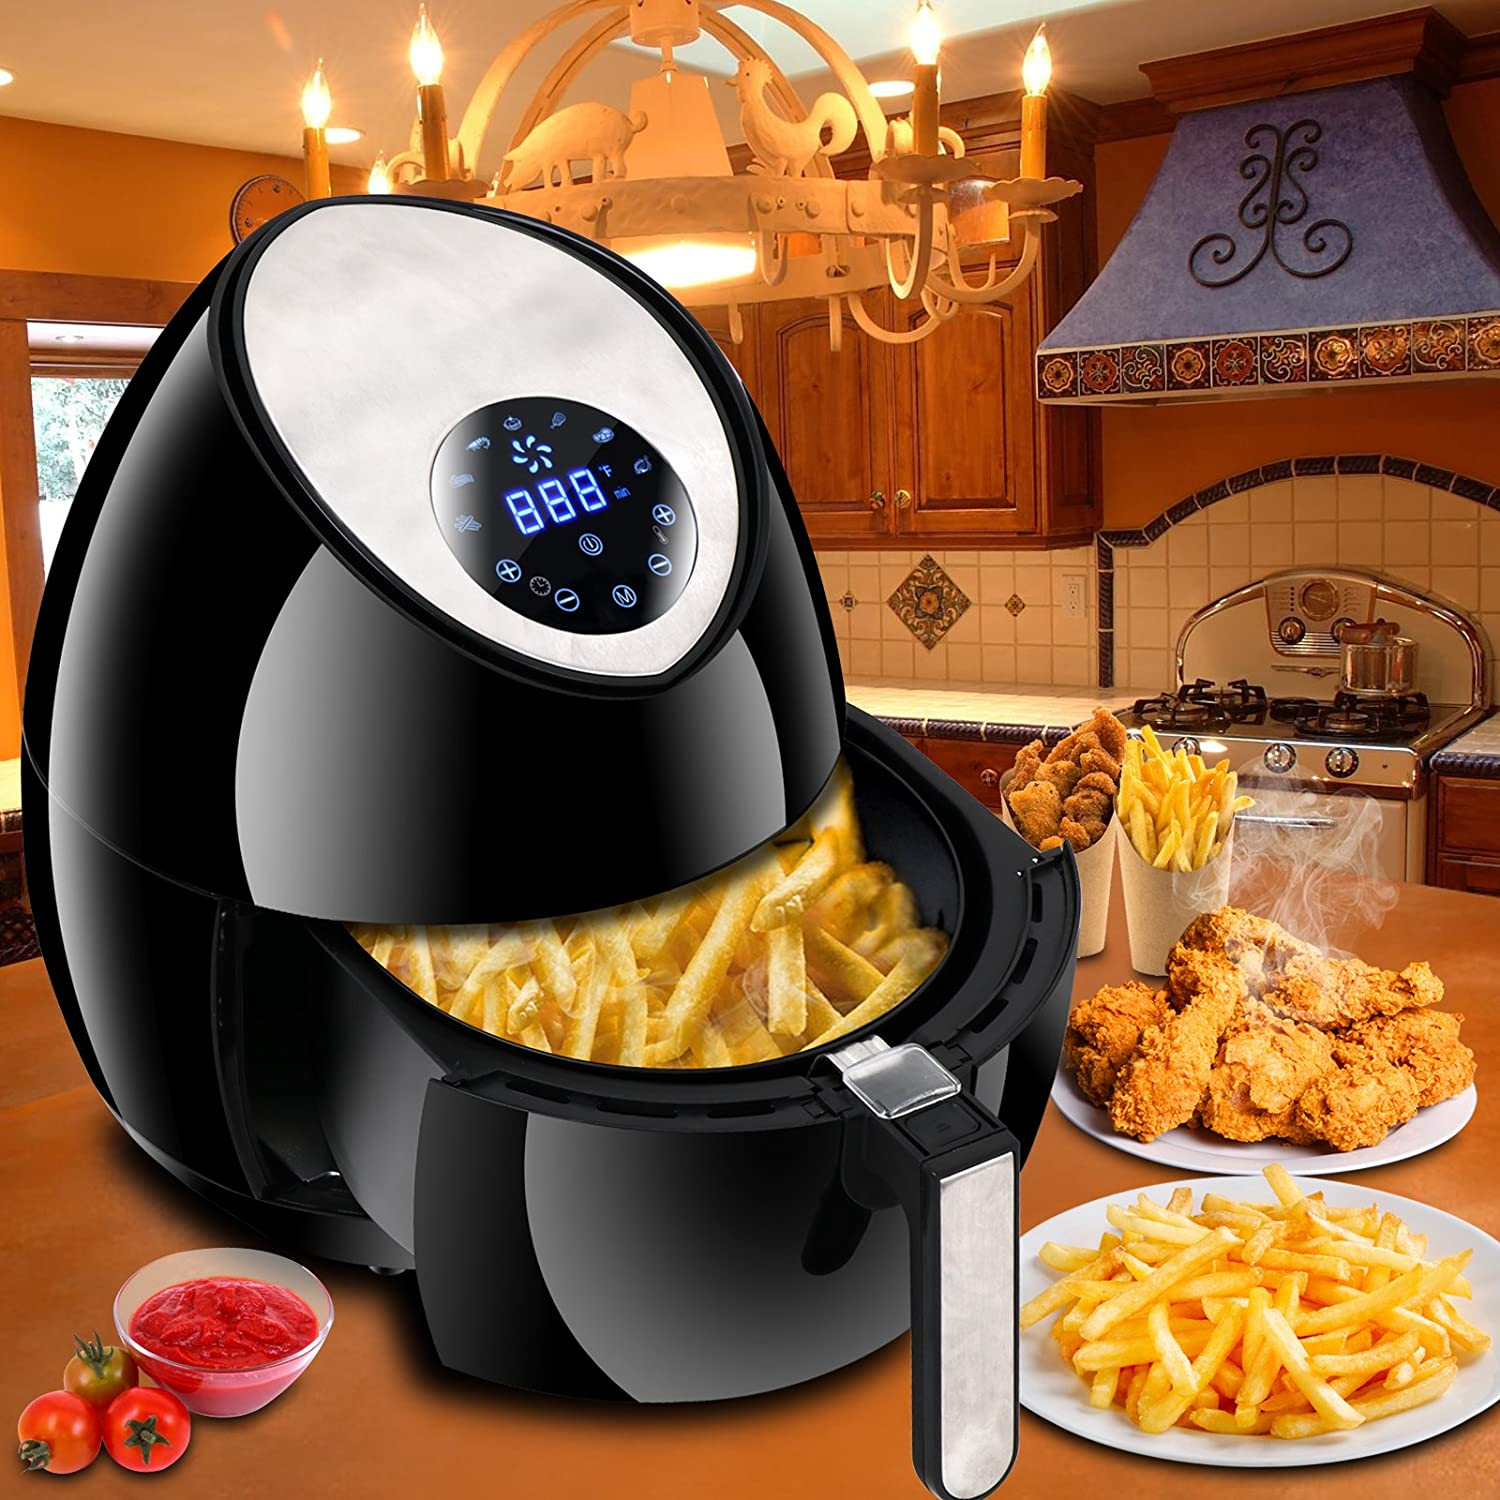 ZENY Electric Air Fryer w/Touch Screen Control 1500W 3.7QT, 7 Presets, w/Recipes & CookBook